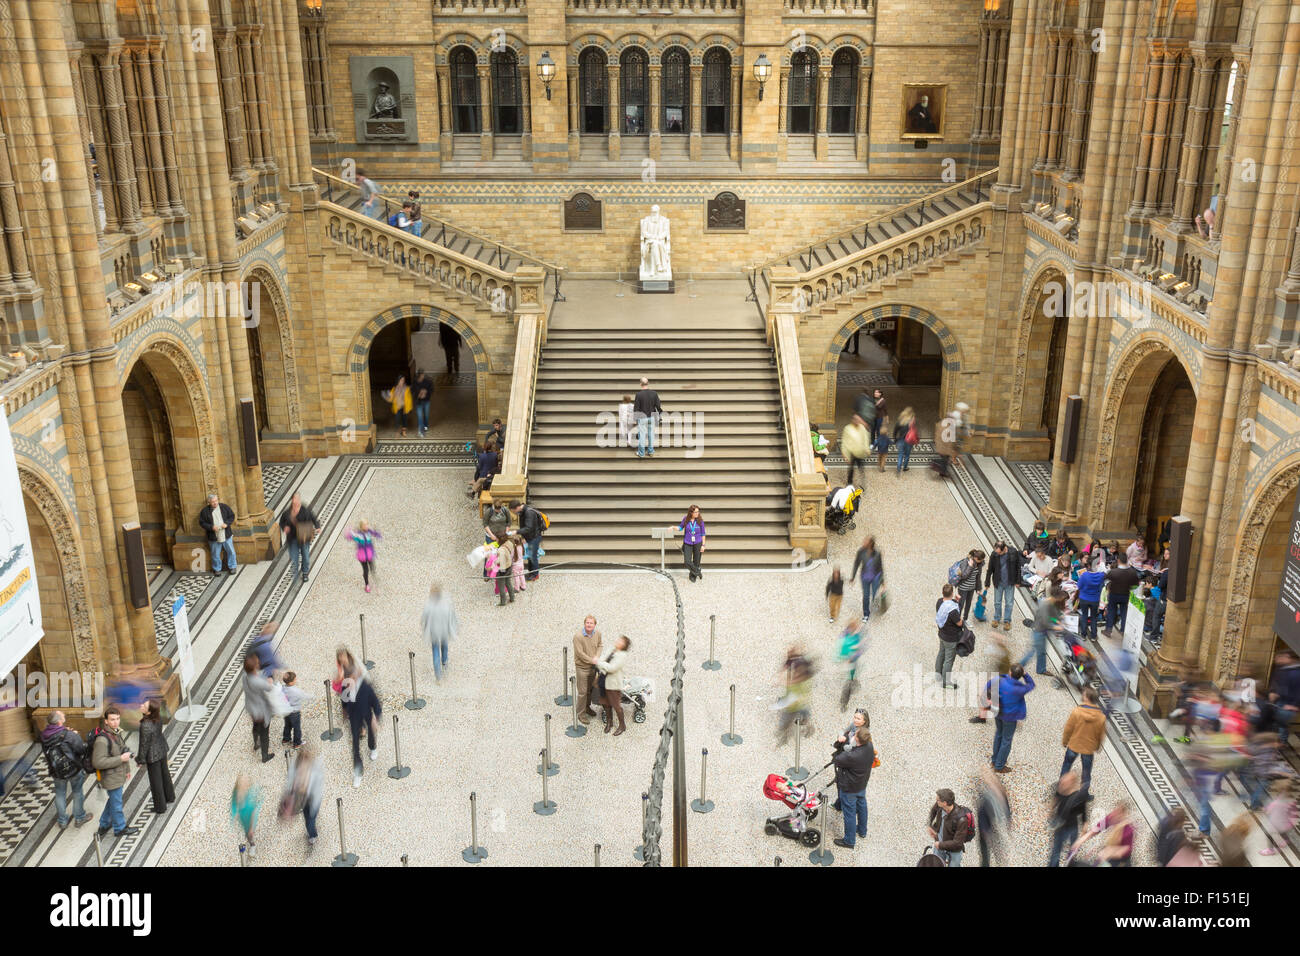 LONDON, UK - APRIL 28, 2013: People in the main hall at London's Natural History Museum. - Stock Image